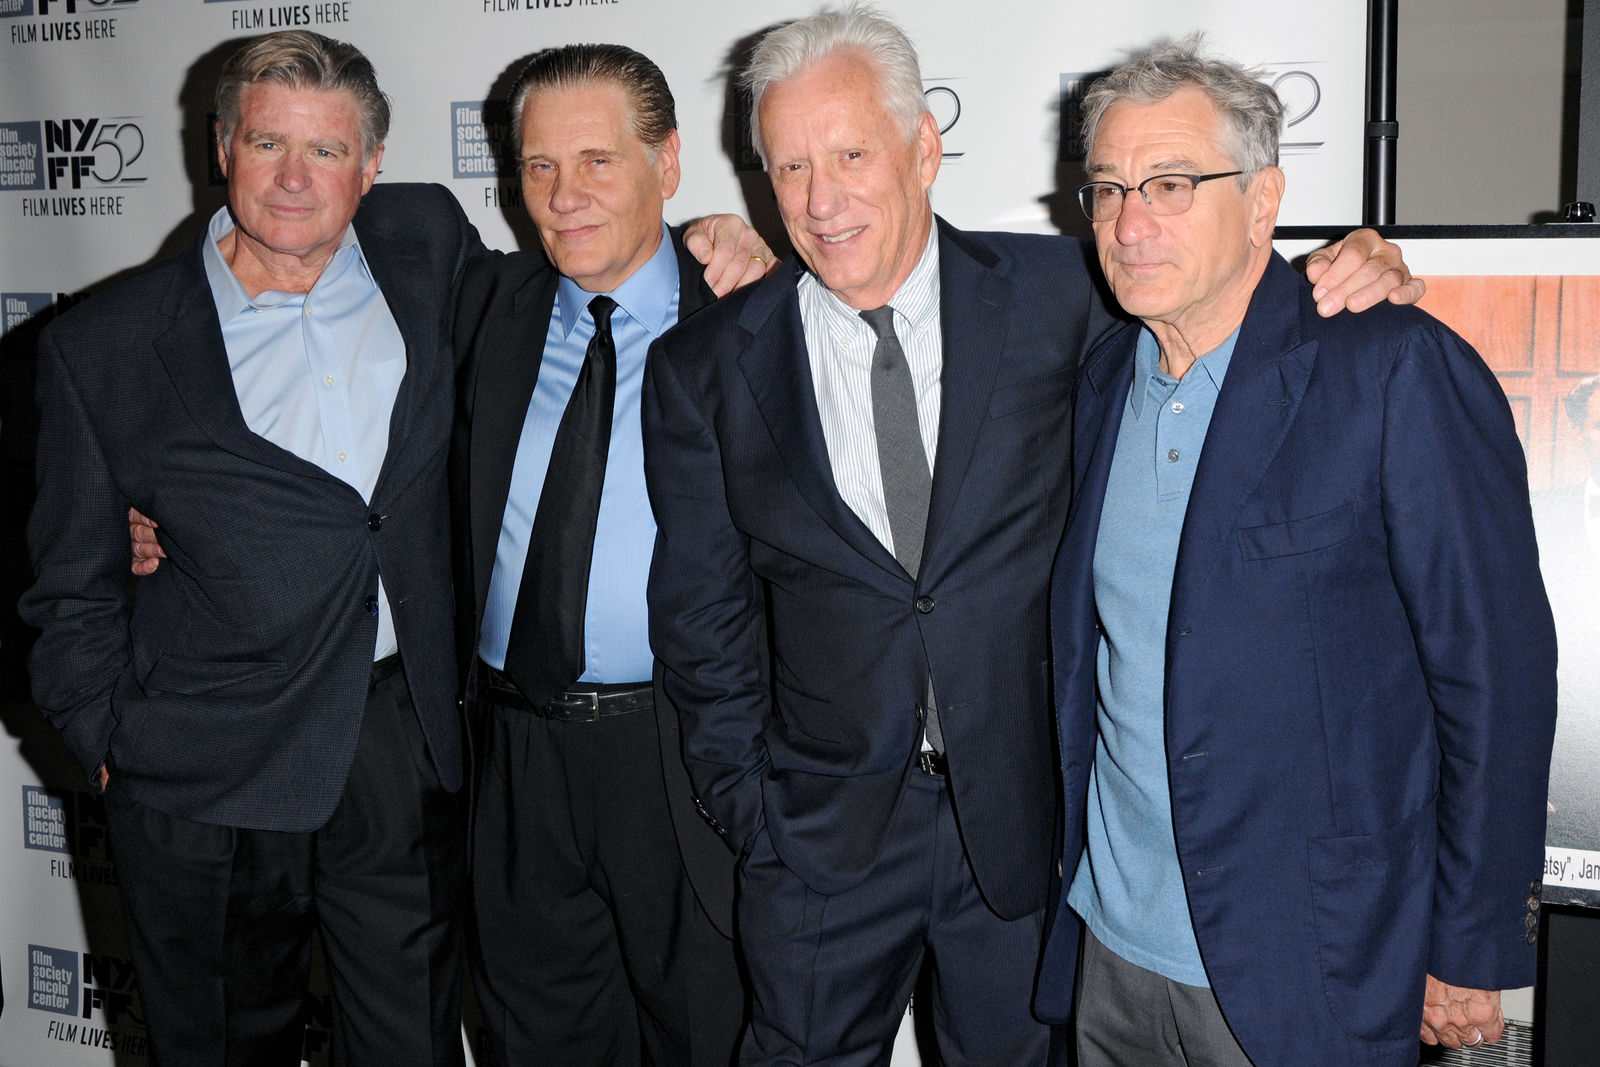 Treat Williams, William Forsythe, James Woods and Robert De Niro at the 52nd New York Film Festival for the premiere of 'Once Upon a Time in America' Extended Director's Cut Collector's Edition. (Where: Manhattan, New York. When: Sept. 27, 2014. Credit: Ivan Nikolov/WENN.com)